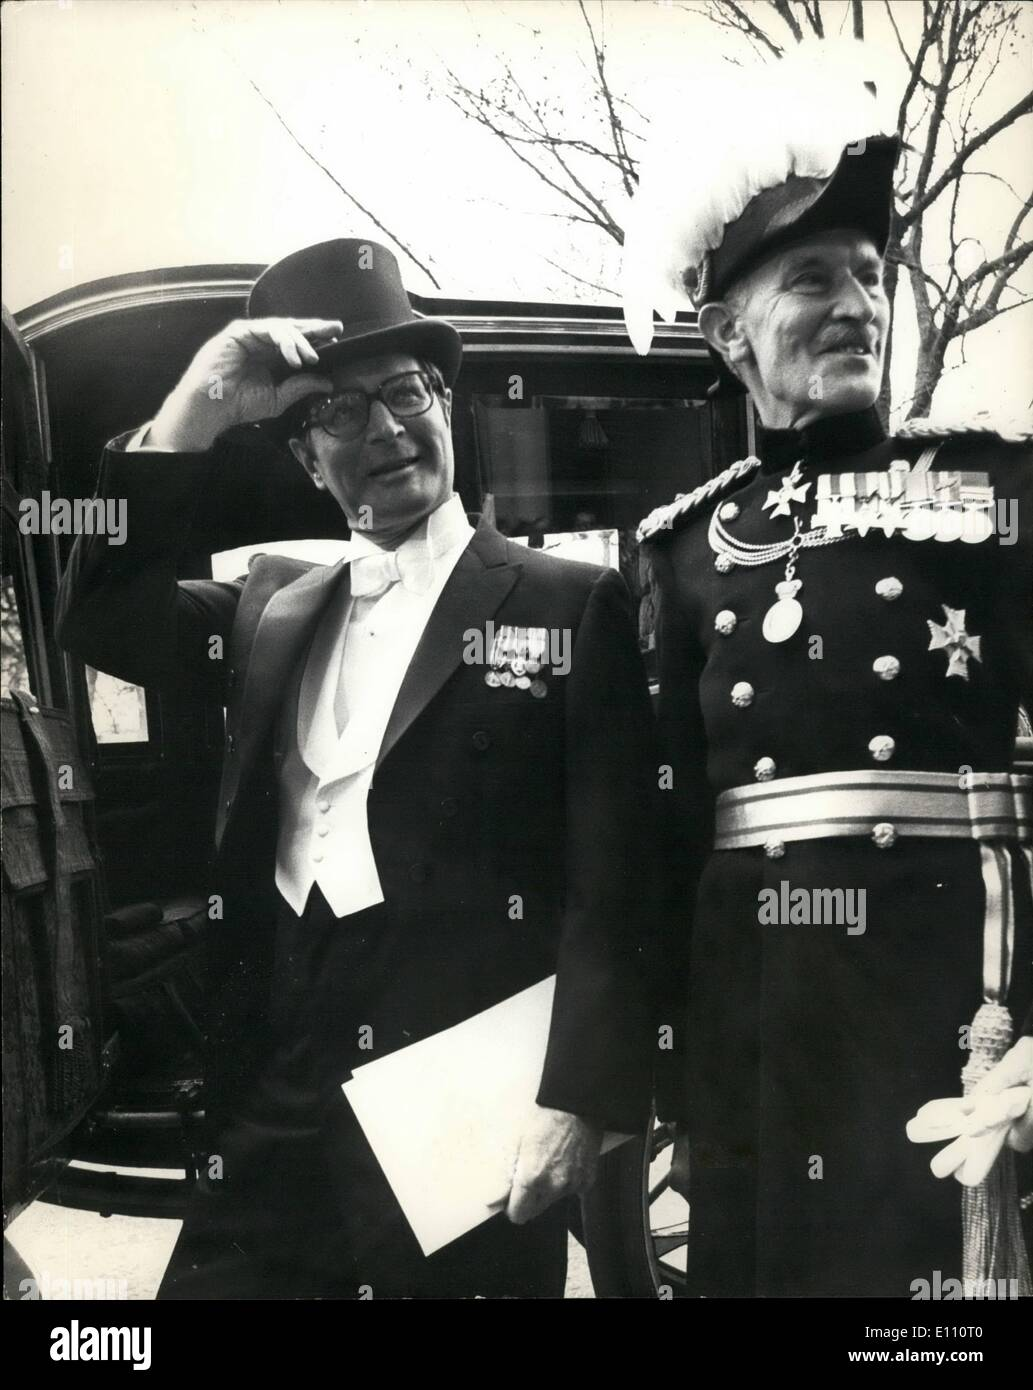 Mar. 03, 1975 - American Ambassador Presents Credentials: Mr. Elliott Richardson, the New American Ambassador, today went to Buckingham Palace to present his credentials. Photo Shows: Mr. Elliott Richardson, leaving the American Embassy in Grosvenor, Square, London, to present his credentials, On right is the Hon. Michael Fitzalan Howard Marshal of the Diplomatic Corps. - Stock Image